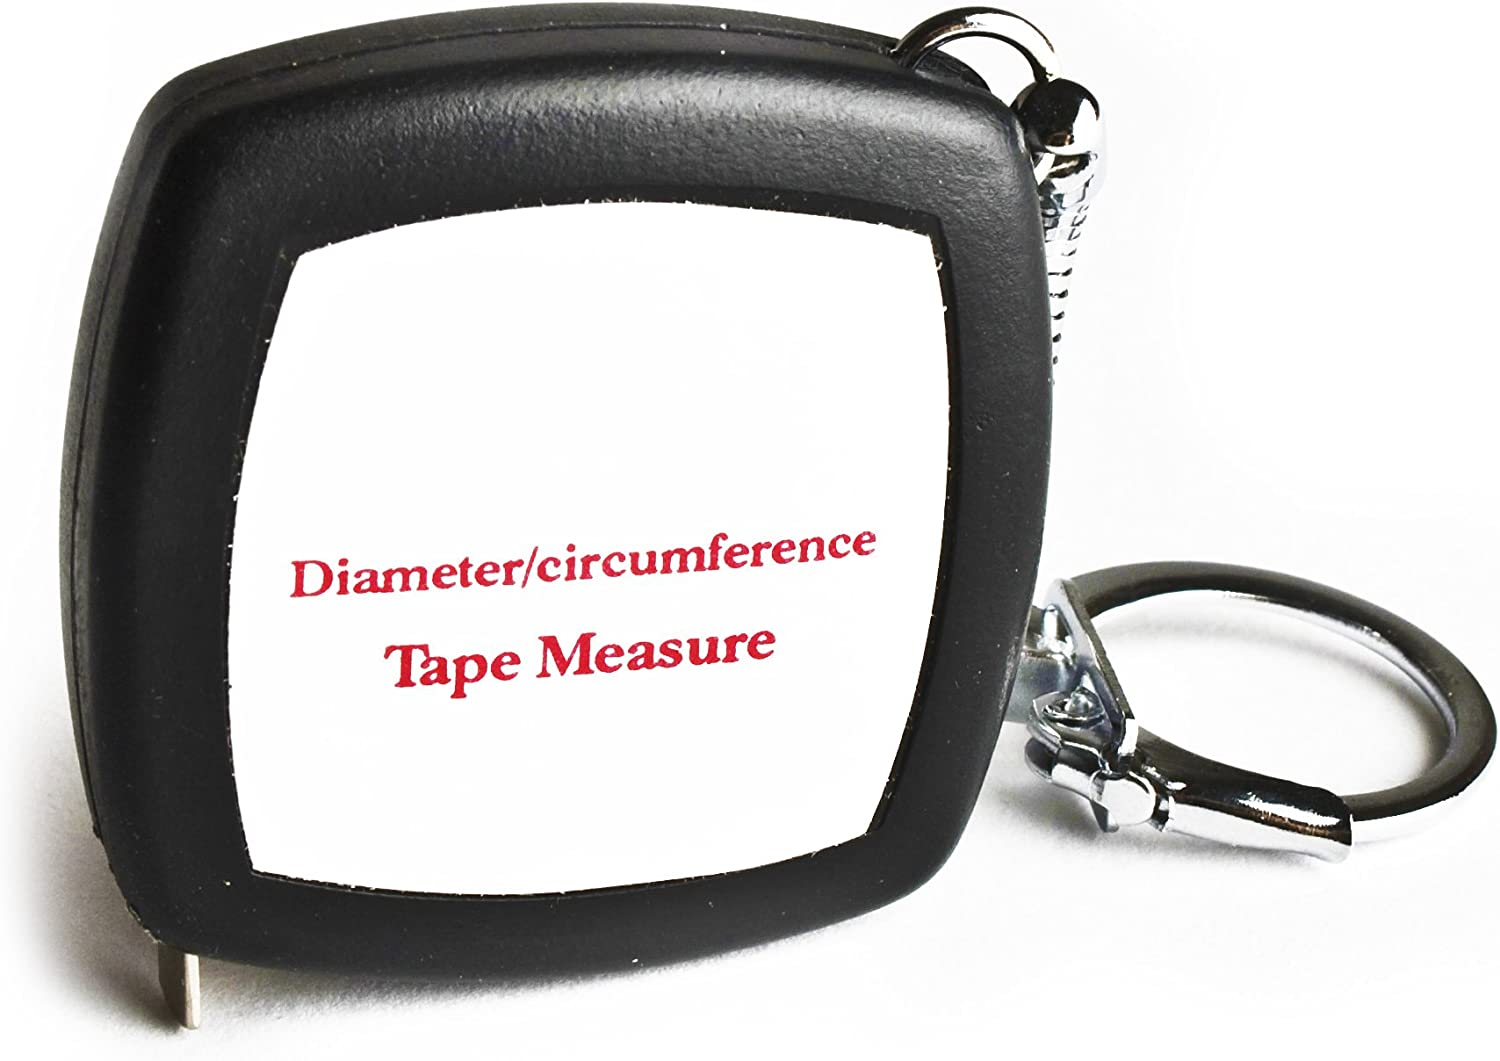 Pocket Precision Diameter Circumference Tape Measure and Layout Pocket Rule - 6.6ft / 2m